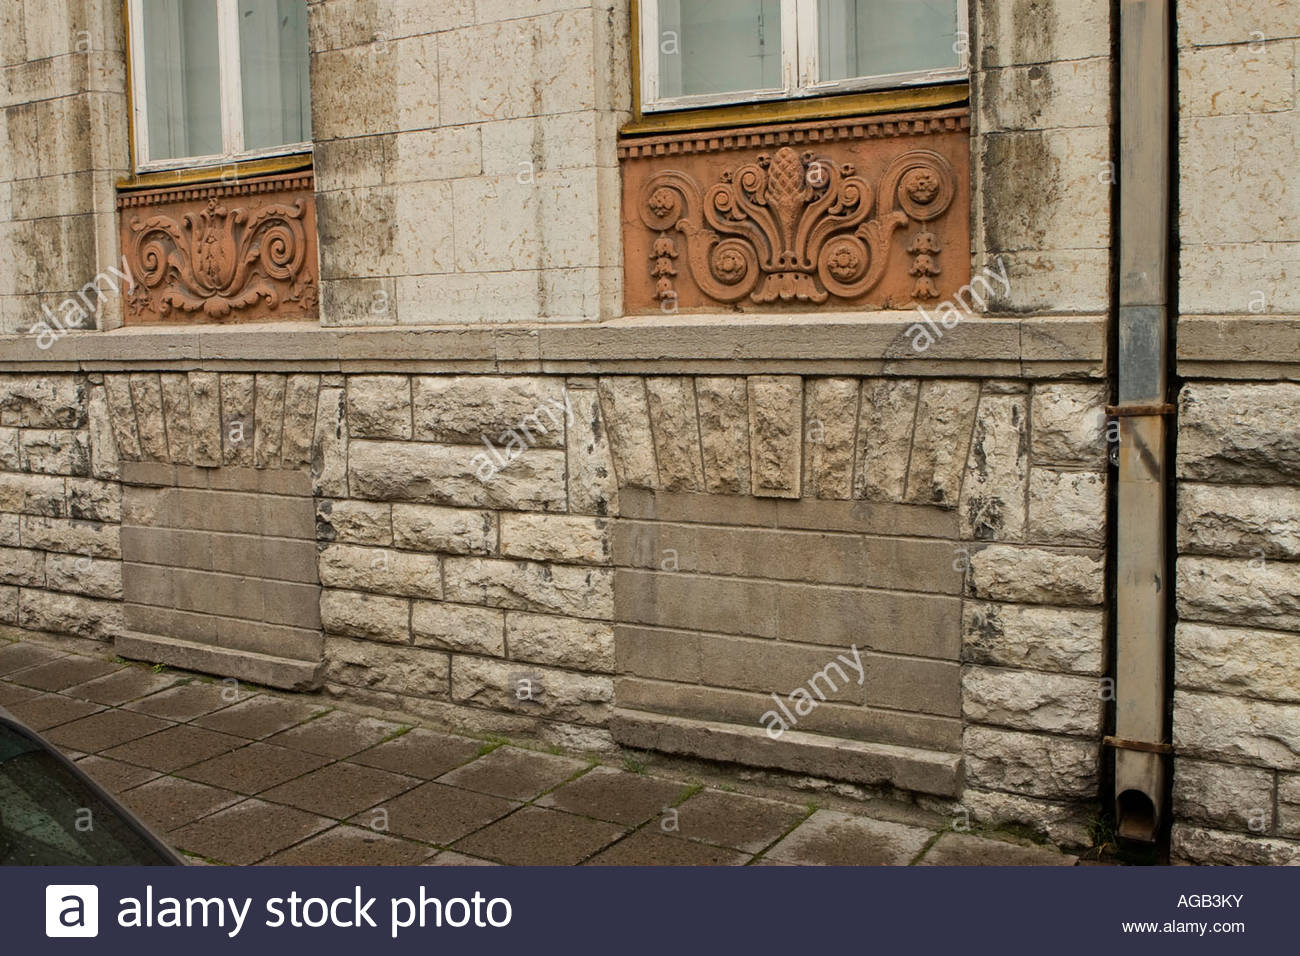 The former KGB HQ in Tallinn with it's blocked cellar windows. - Stock Image